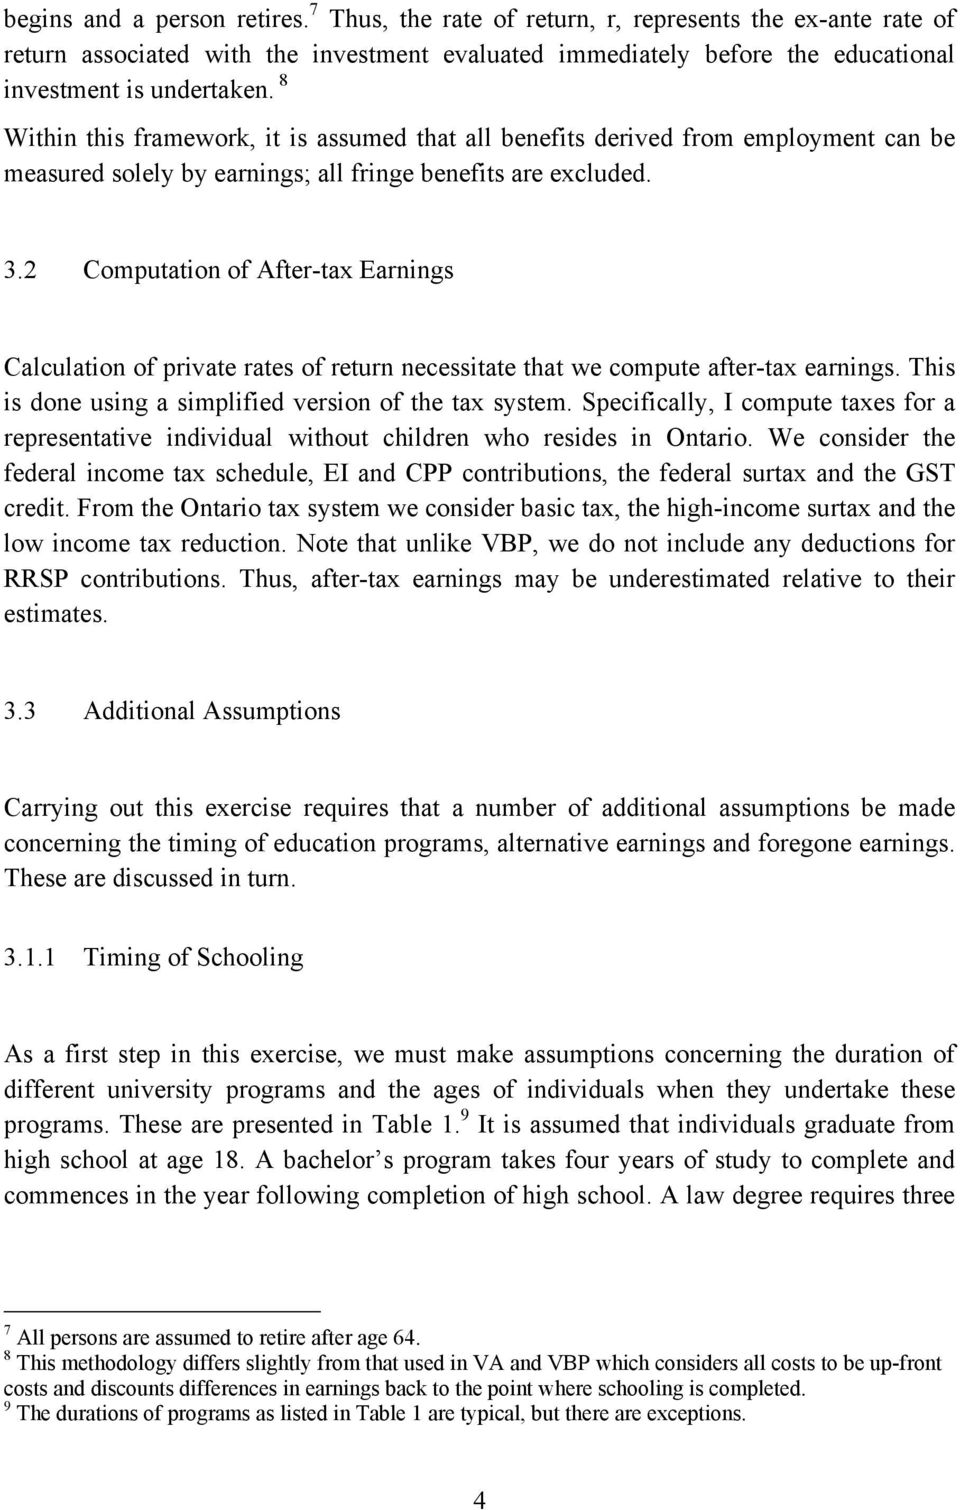 2 Computation of After-tax Earnings Calculation of private rates of return necessitate that we compute after-tax earnings. This is done using a simplified version of the tax system.